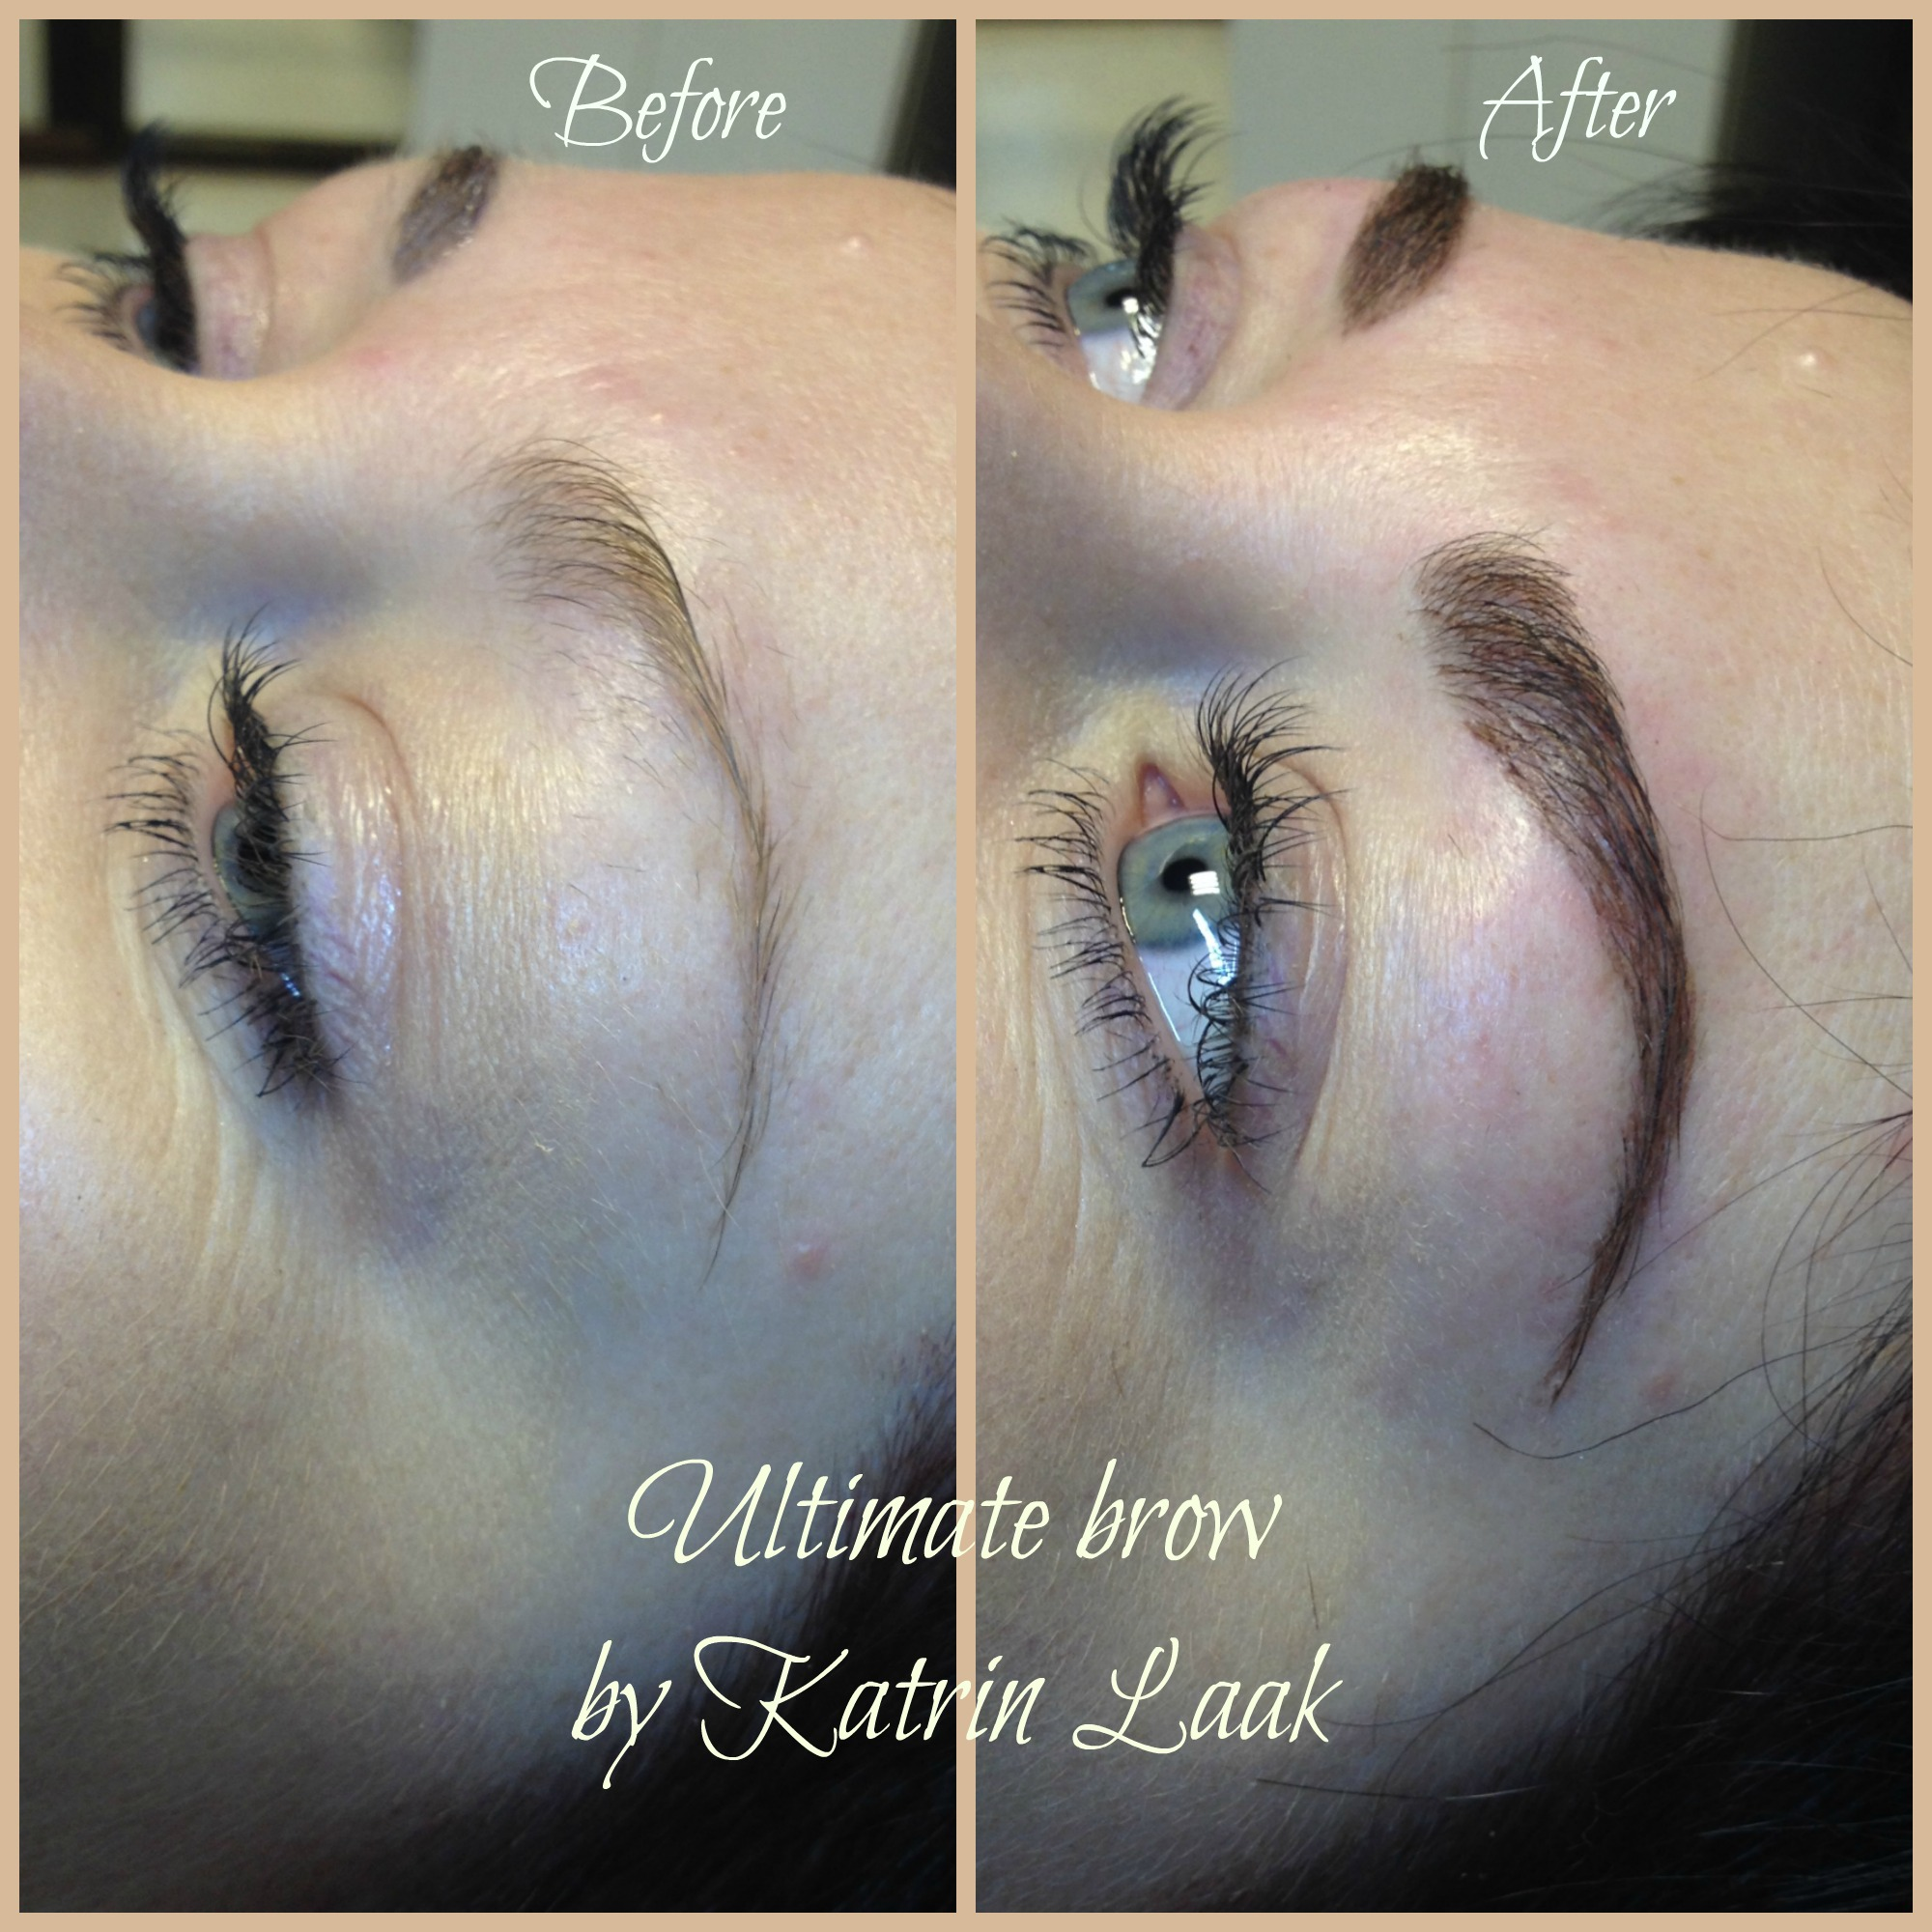 Ultimate brow 3